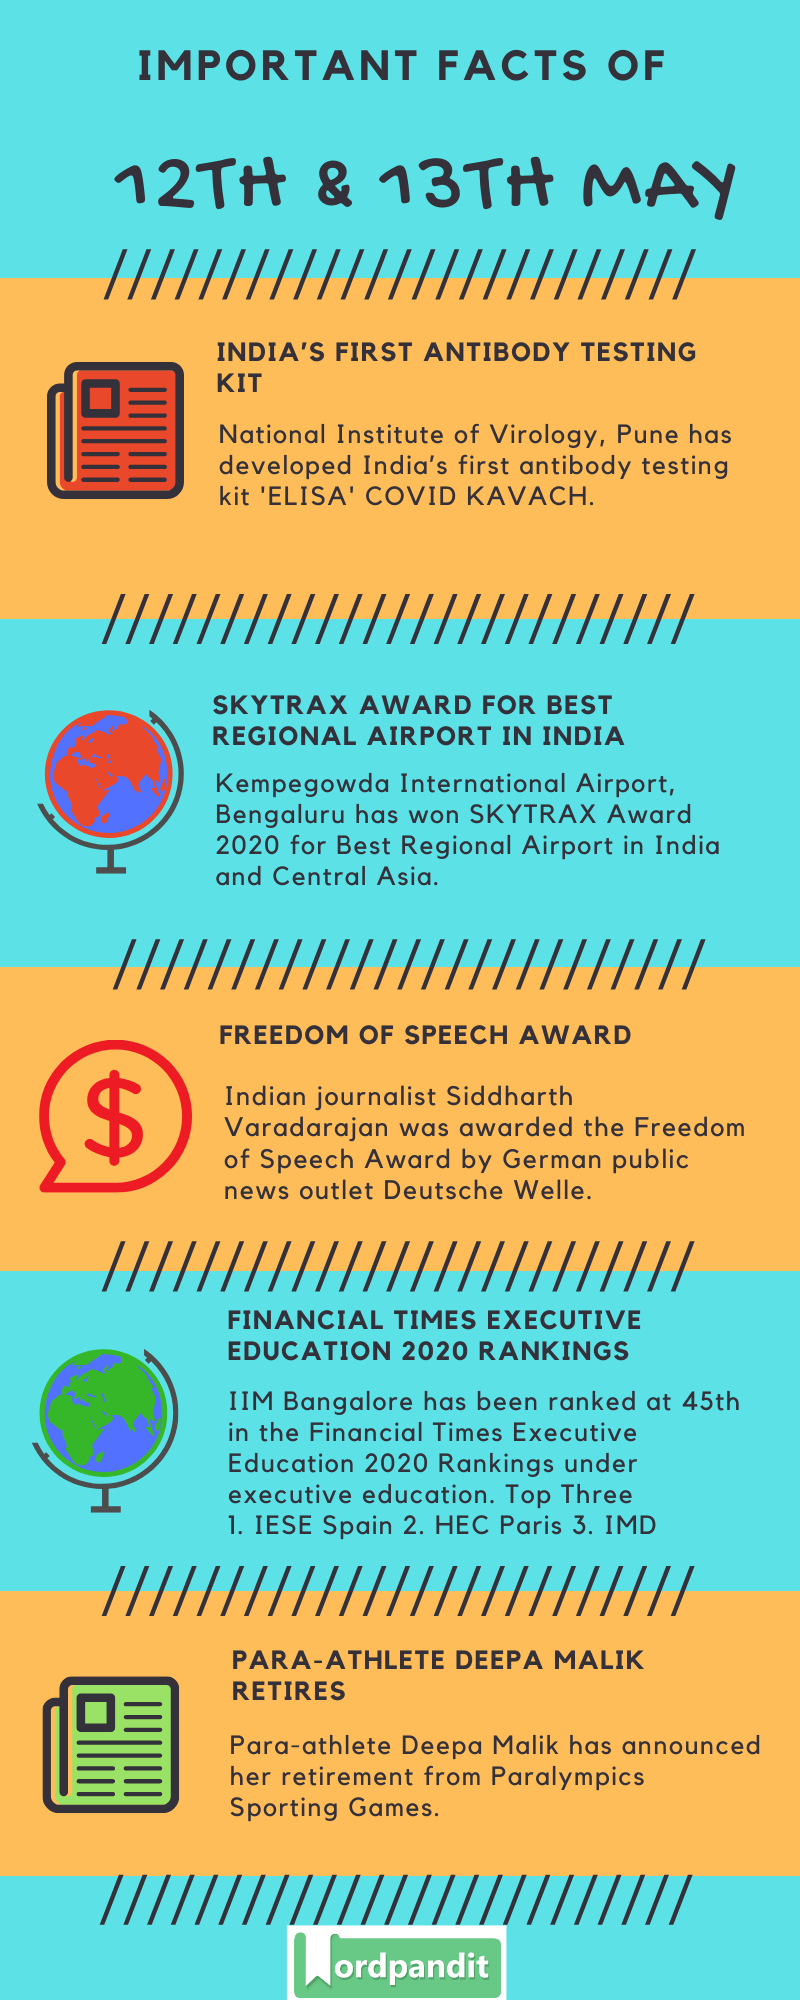 Daily Current Affairs 12th & 13th May 2020 Current Affairs Quiz 12th & 13th May 2020 Current Affairs Infographic